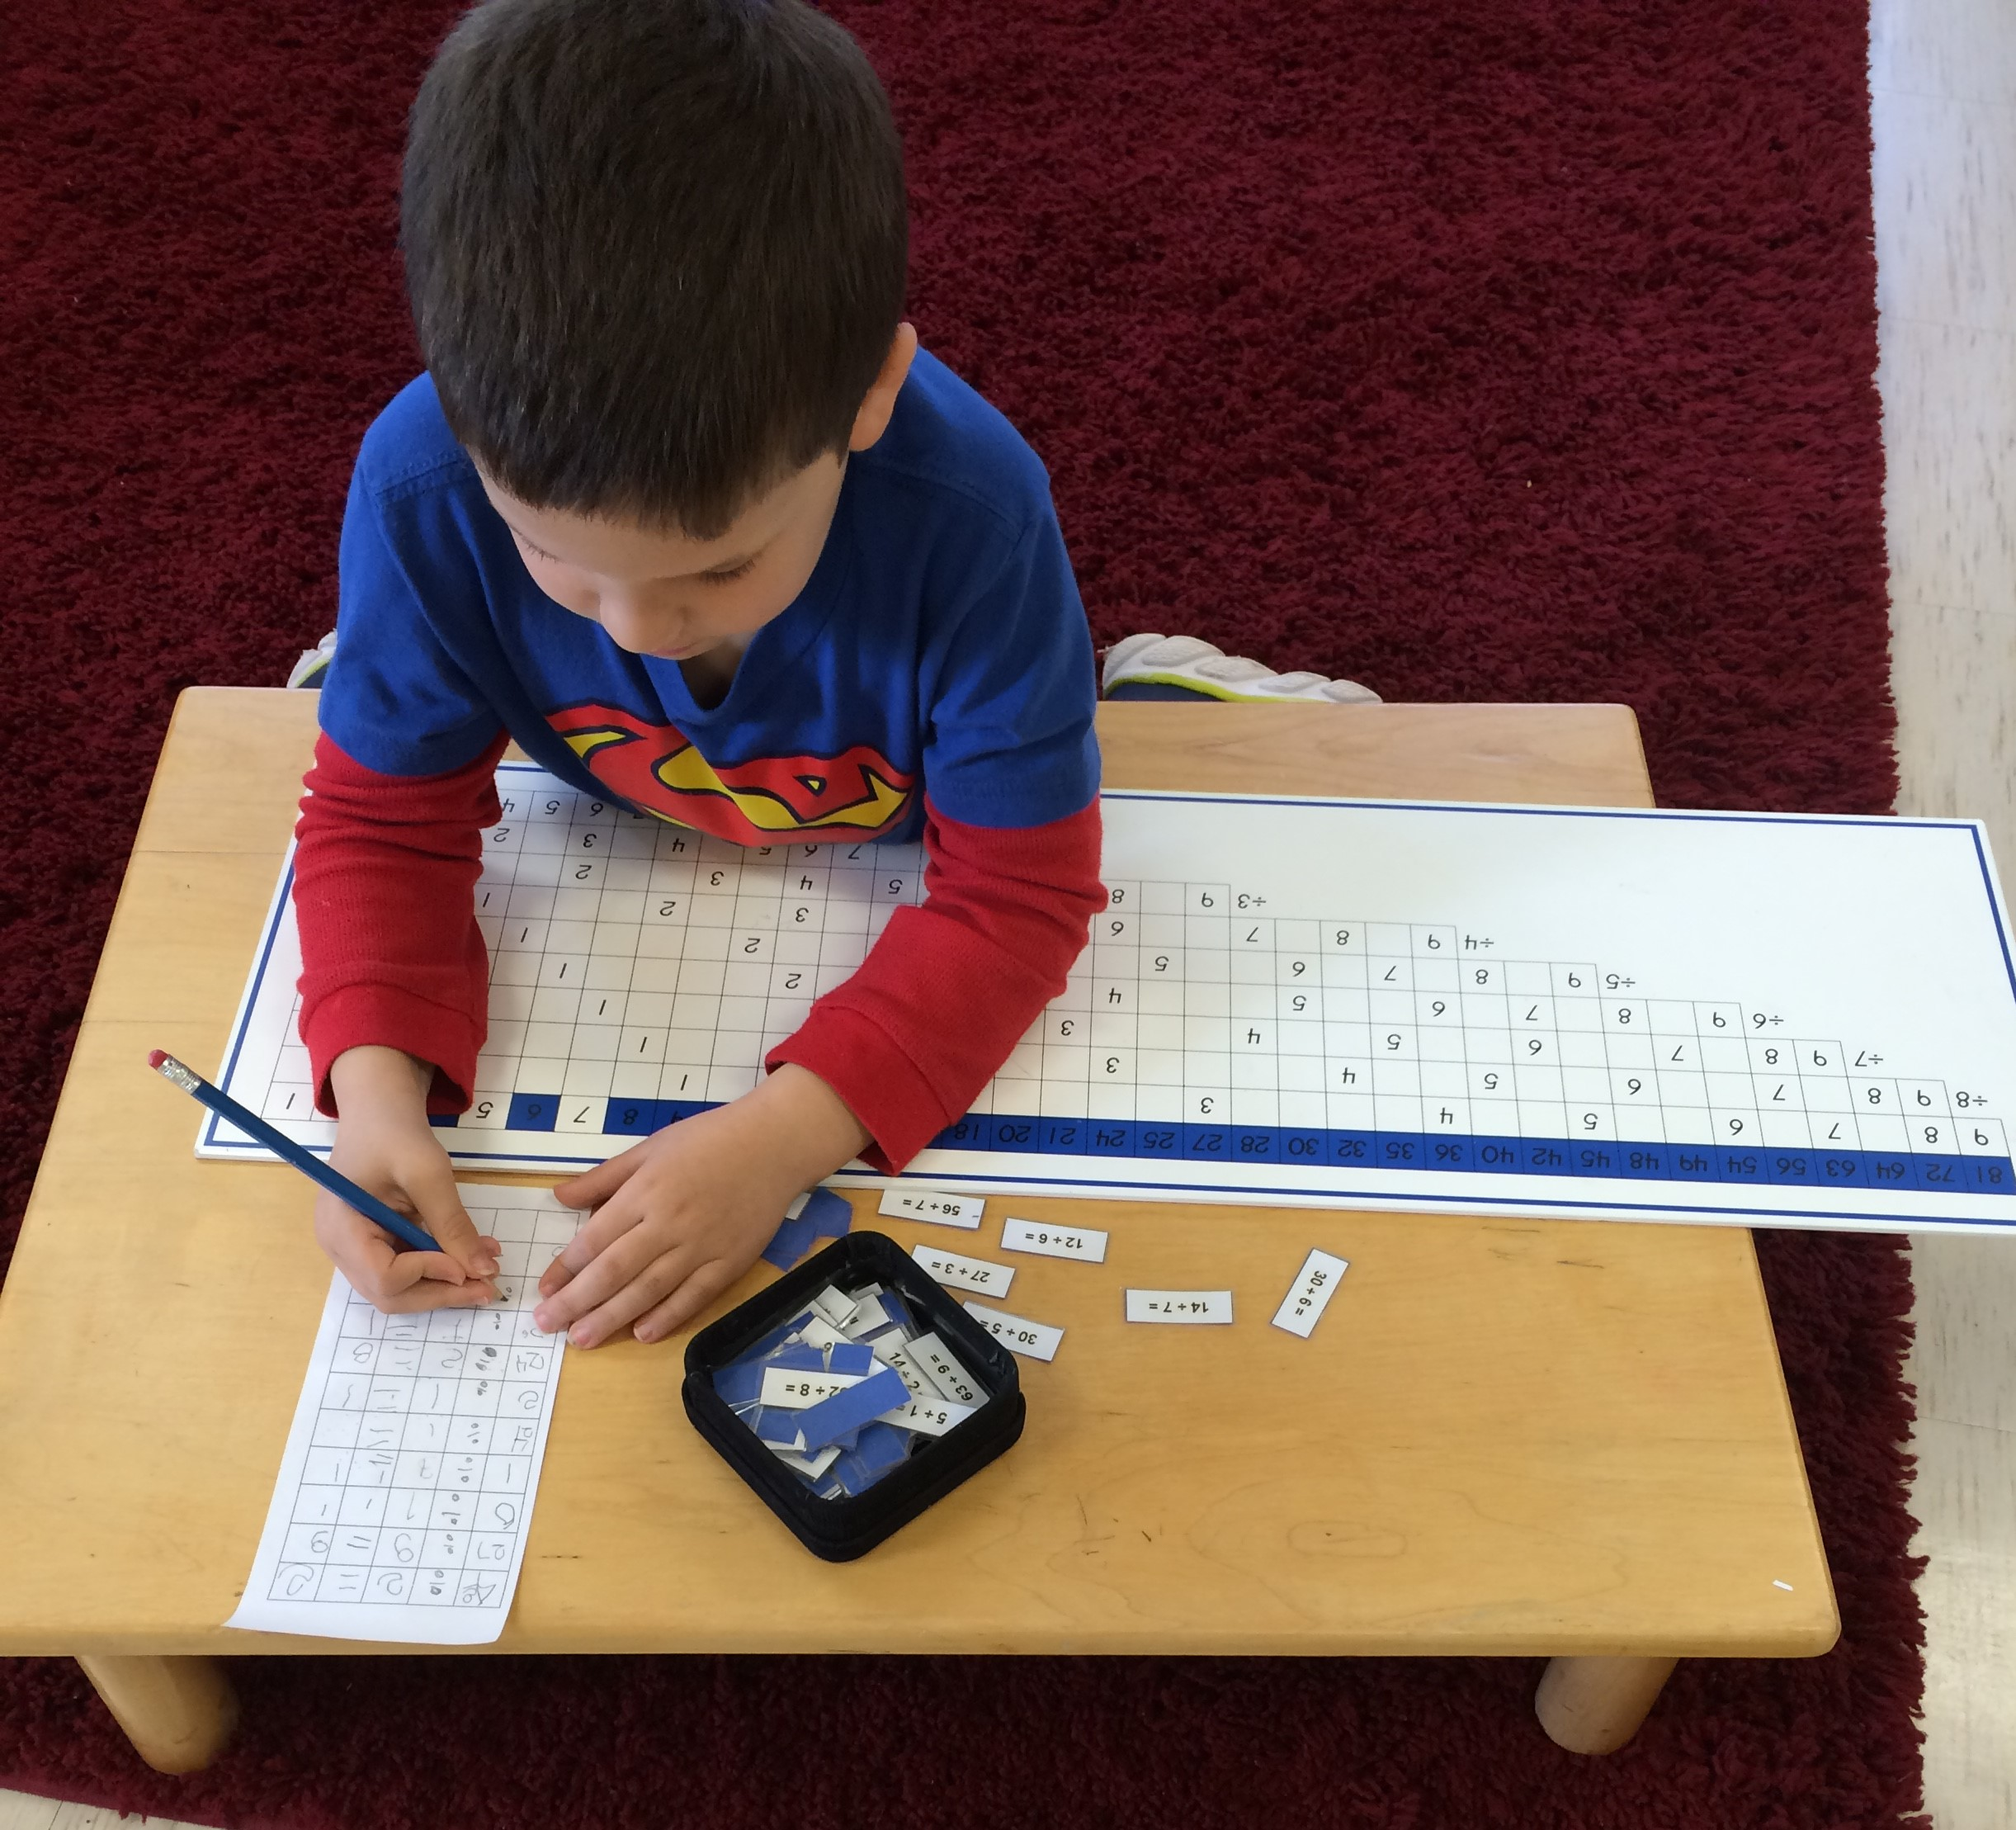 The division practice chart gives the child lots of experience learning his division math facts using tickets with equations and finding the answer on the chart. The way the child checks his work is with a control chart of answers.